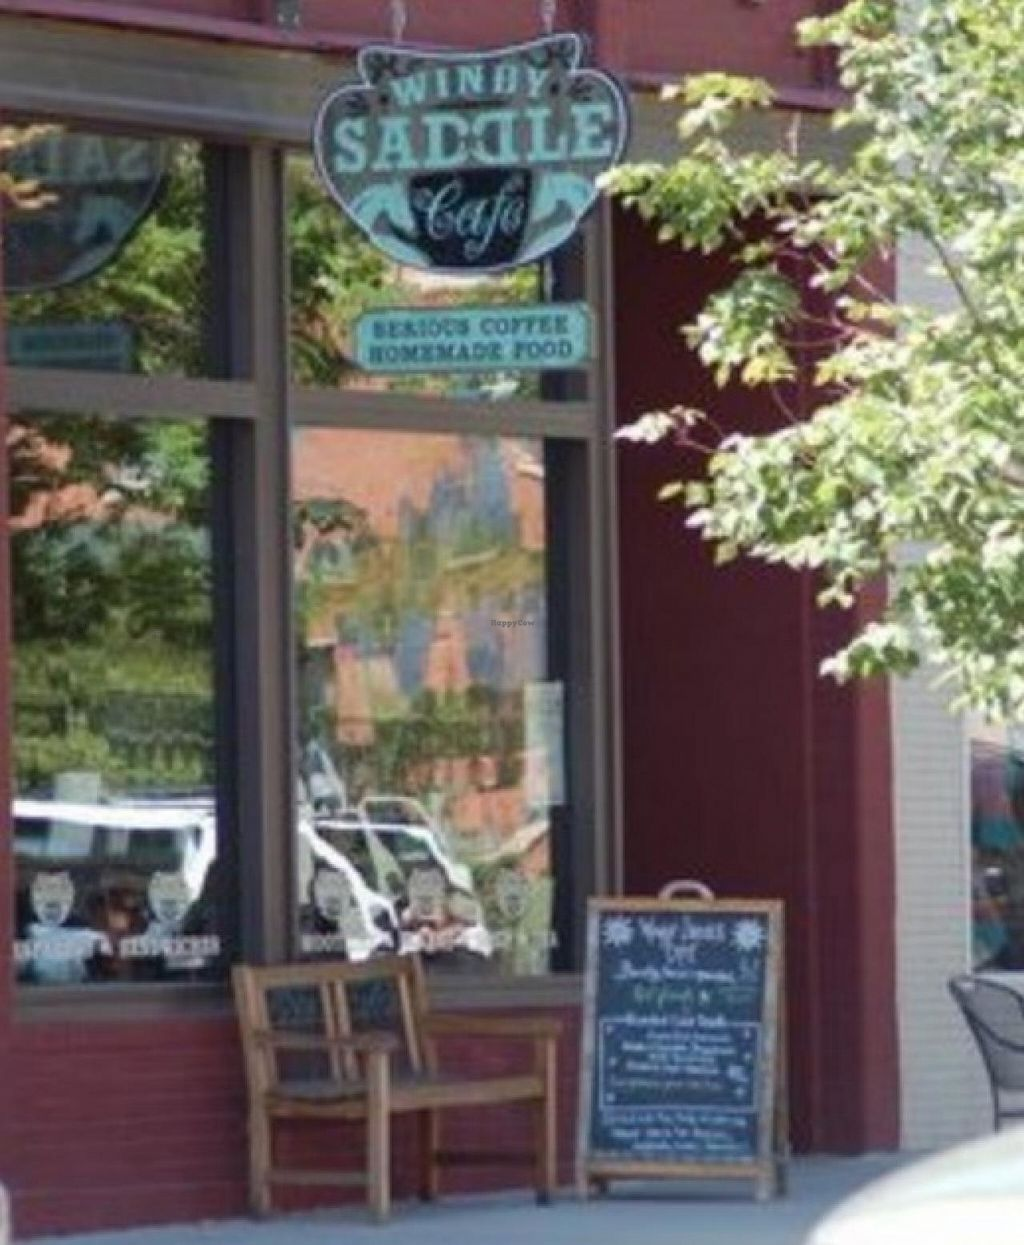 """Photo of Windy Saddle Cafe  by <a href=""""/members/profile/community"""">community</a> <br/>Windy Saddle Cafe  <br/> April 27, 2015  - <a href='/contact/abuse/image/50378/100464'>Report</a>"""